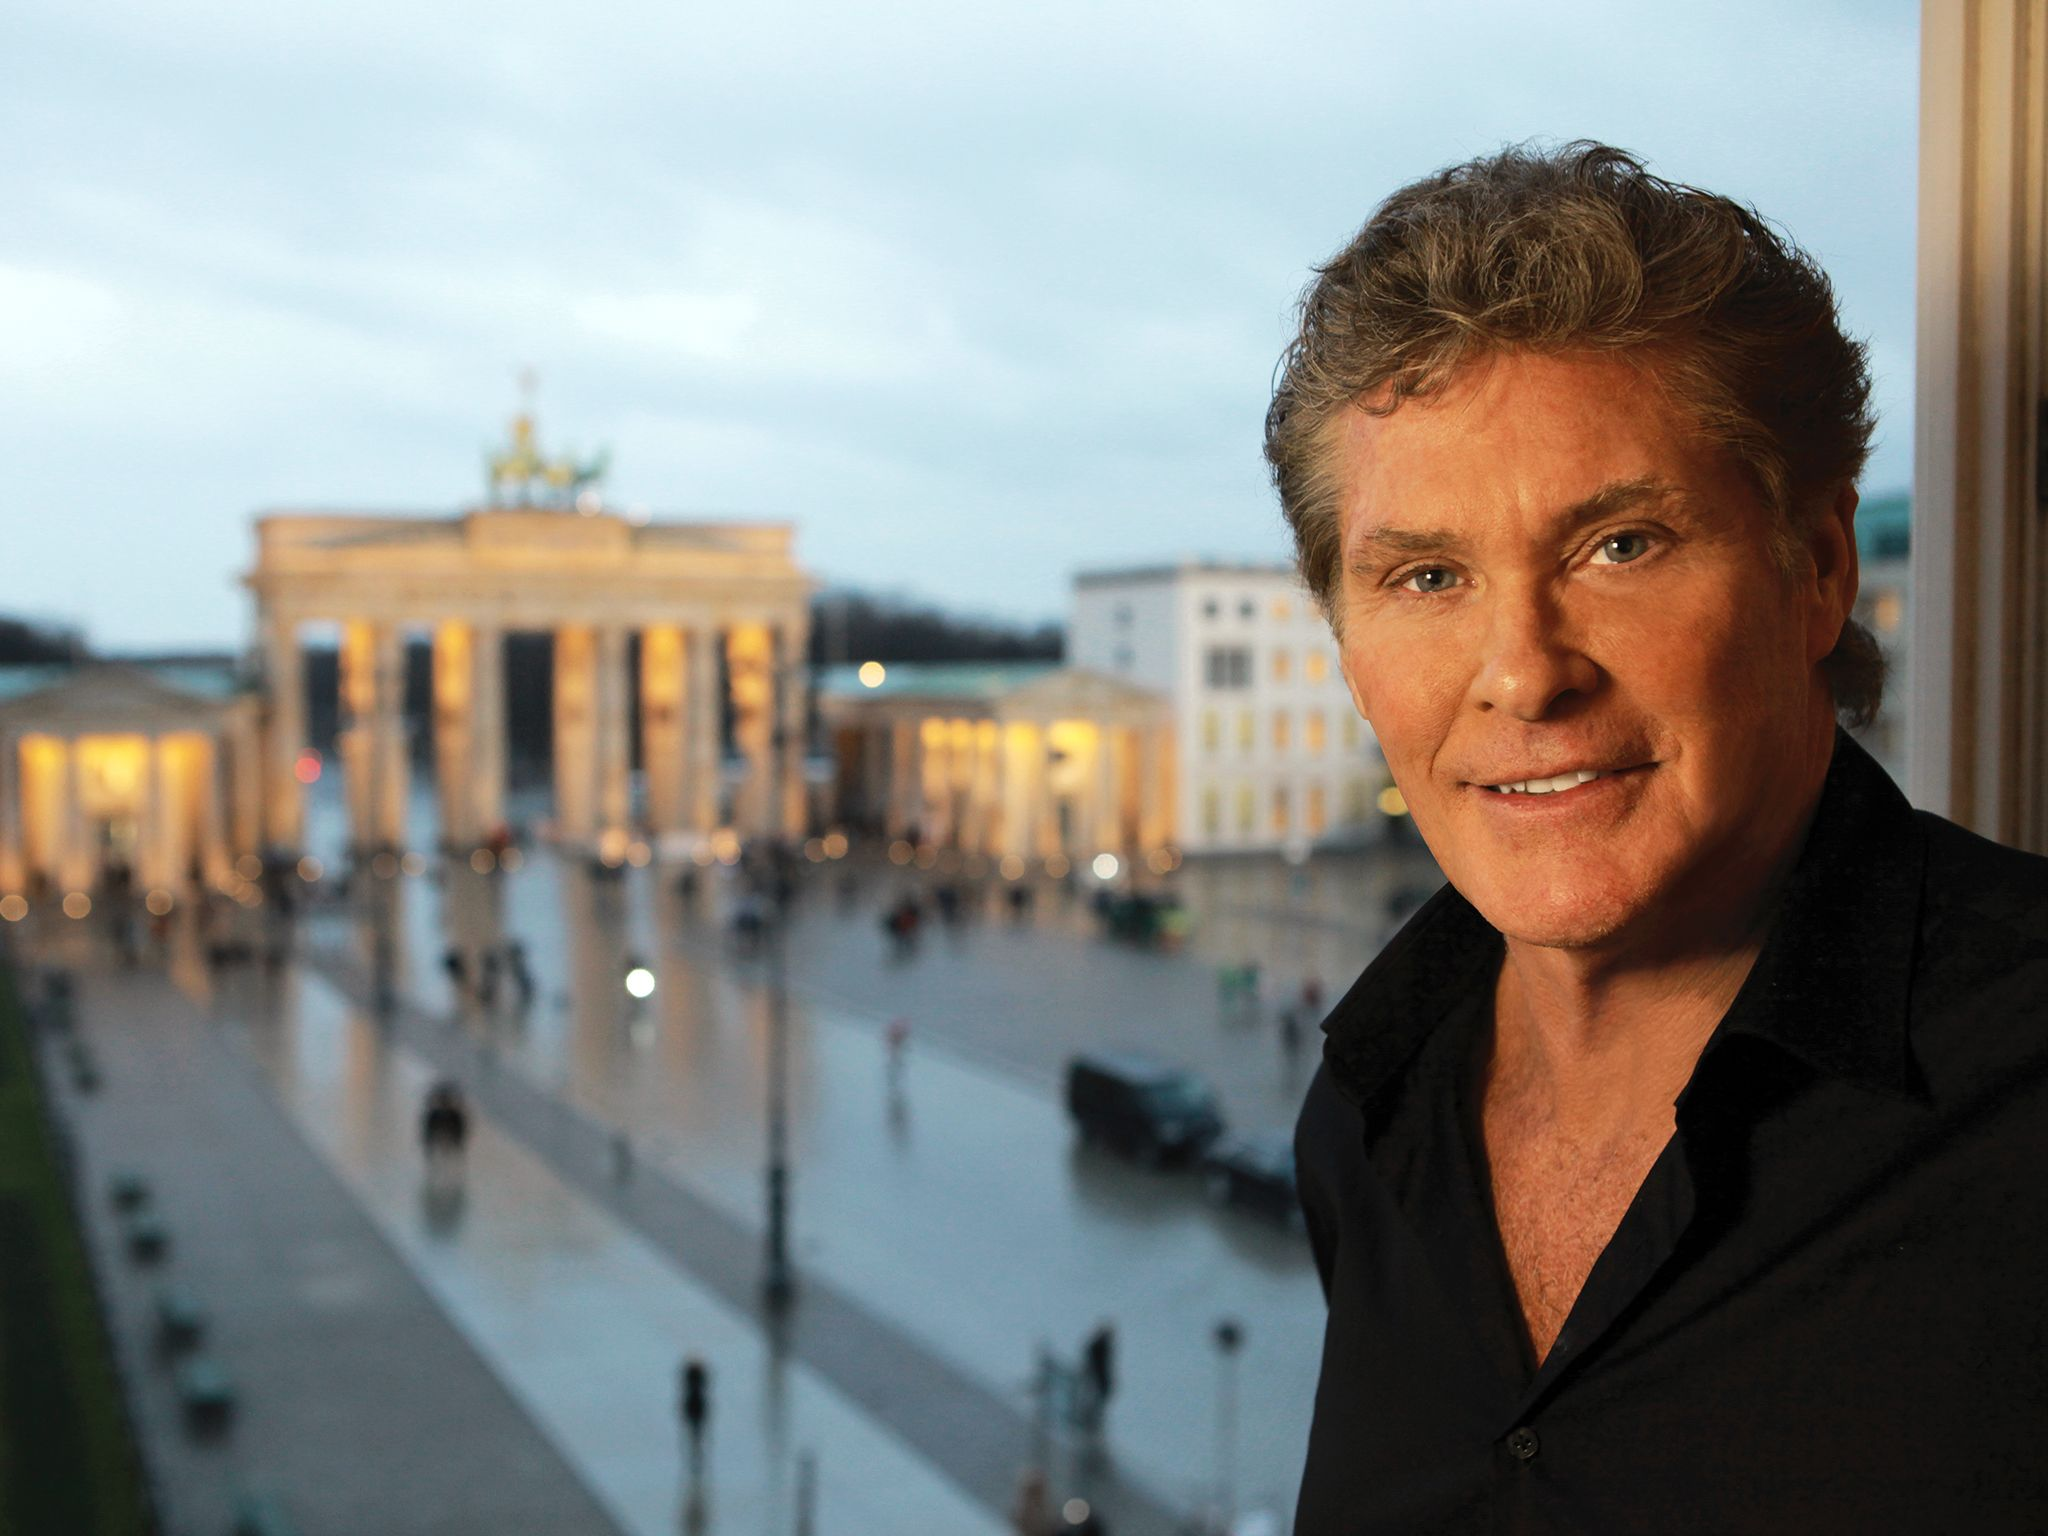 Berlin, Germany: David Hasselhoff in his hotel room overlooking the Brandenburg Gate. This image... [Photo of the day - 十一月 2014]